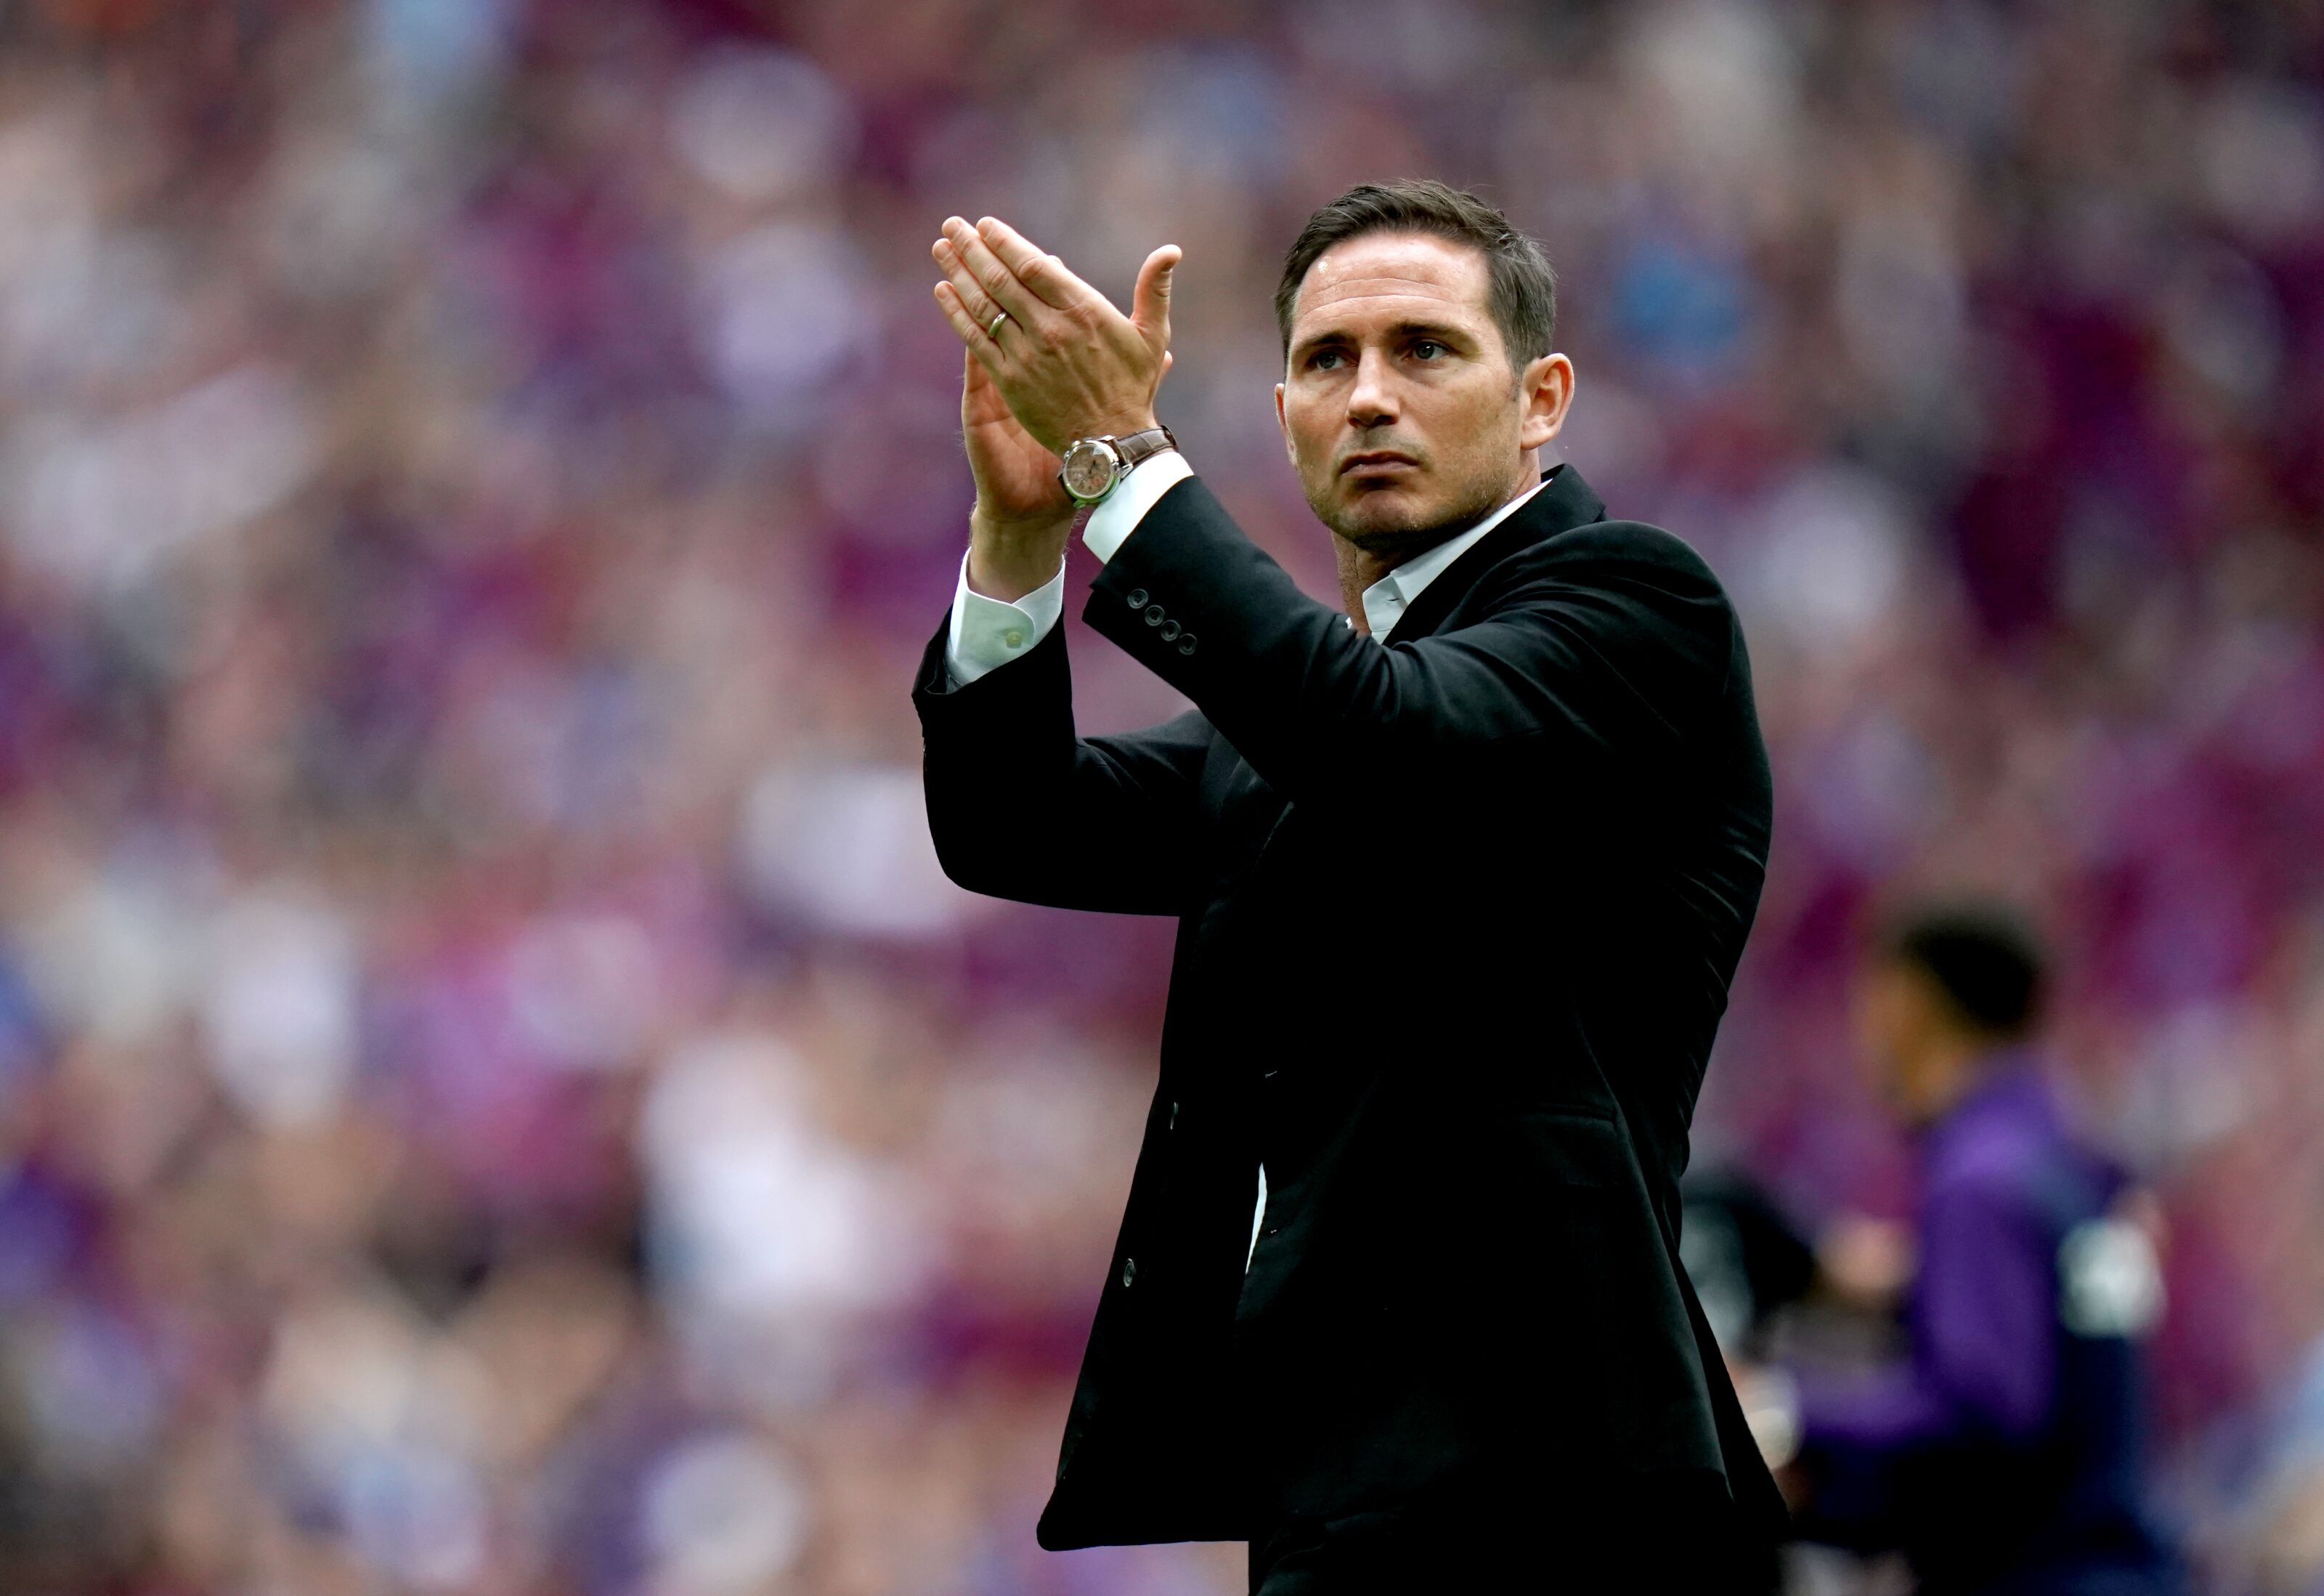 Frank Lampard to sign new coaching deal away from Derby County